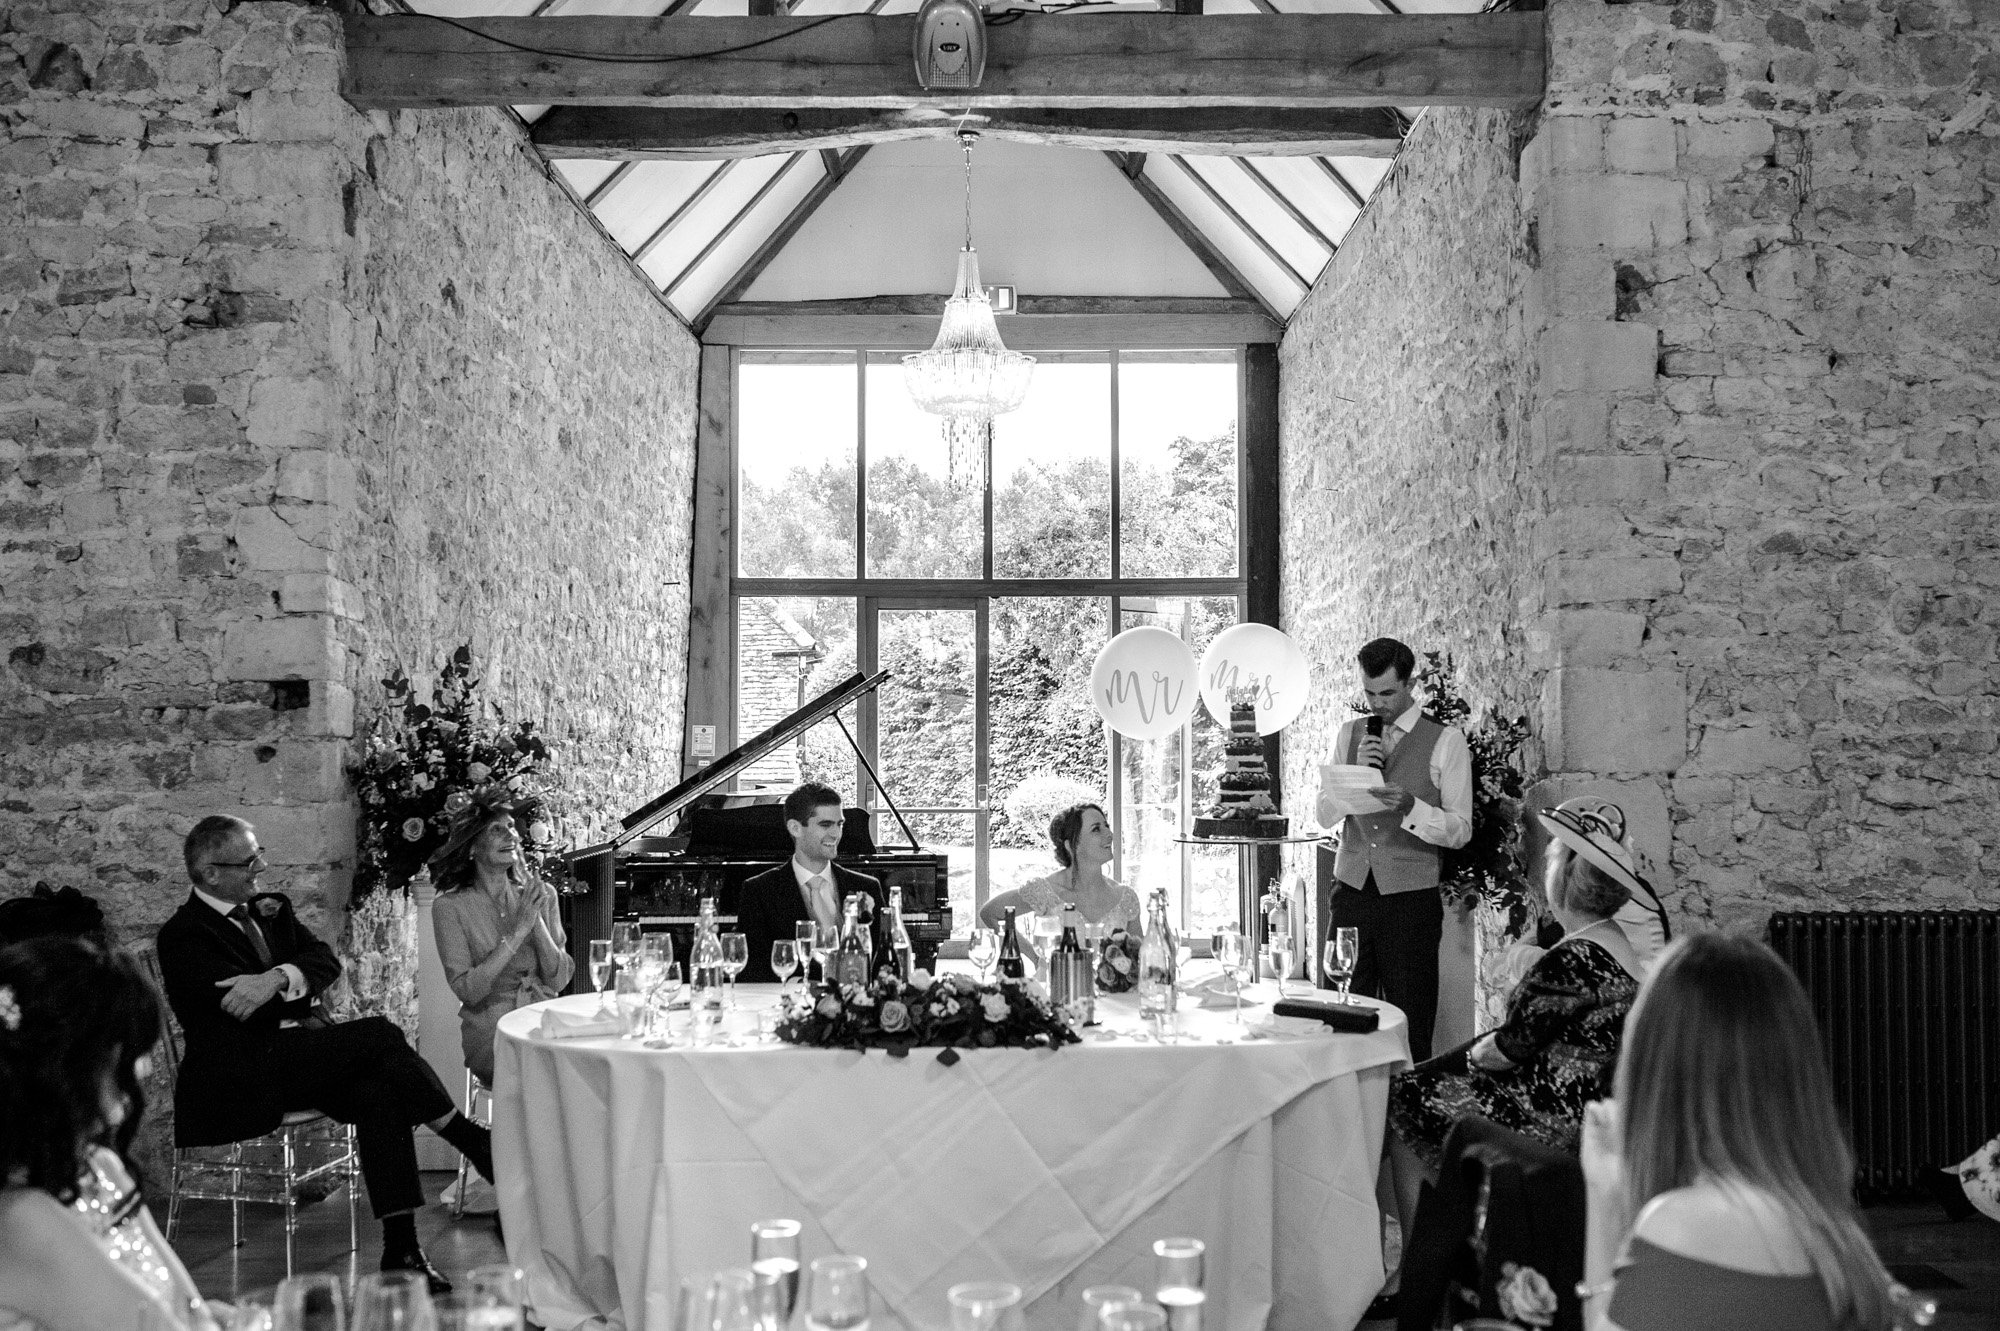 Notley Barn Wedding 26.10.18 30.jpg